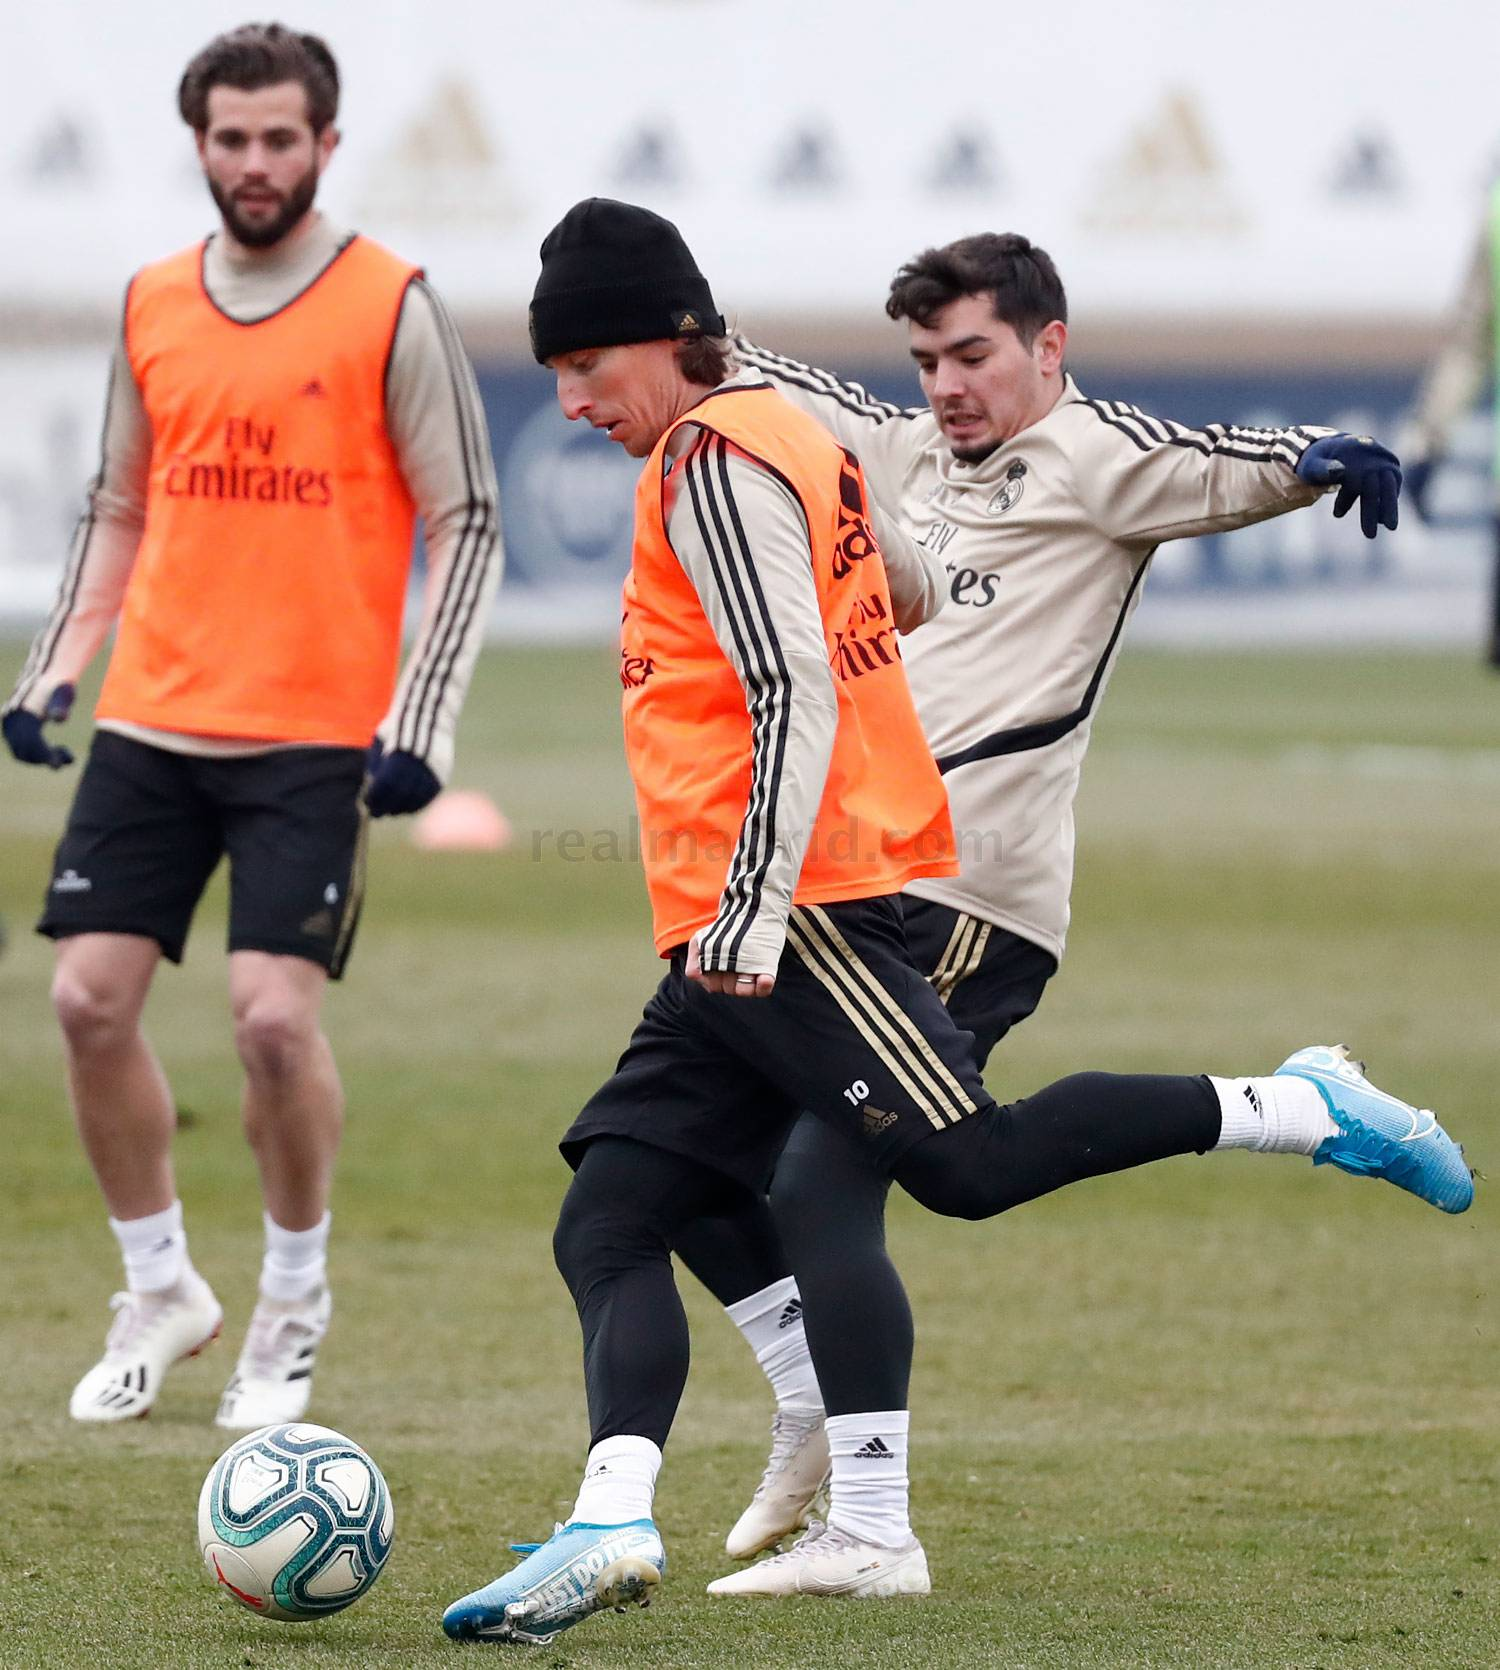 Real Madrid - Entrenamiento del Real Madrid  - 15-01-2020